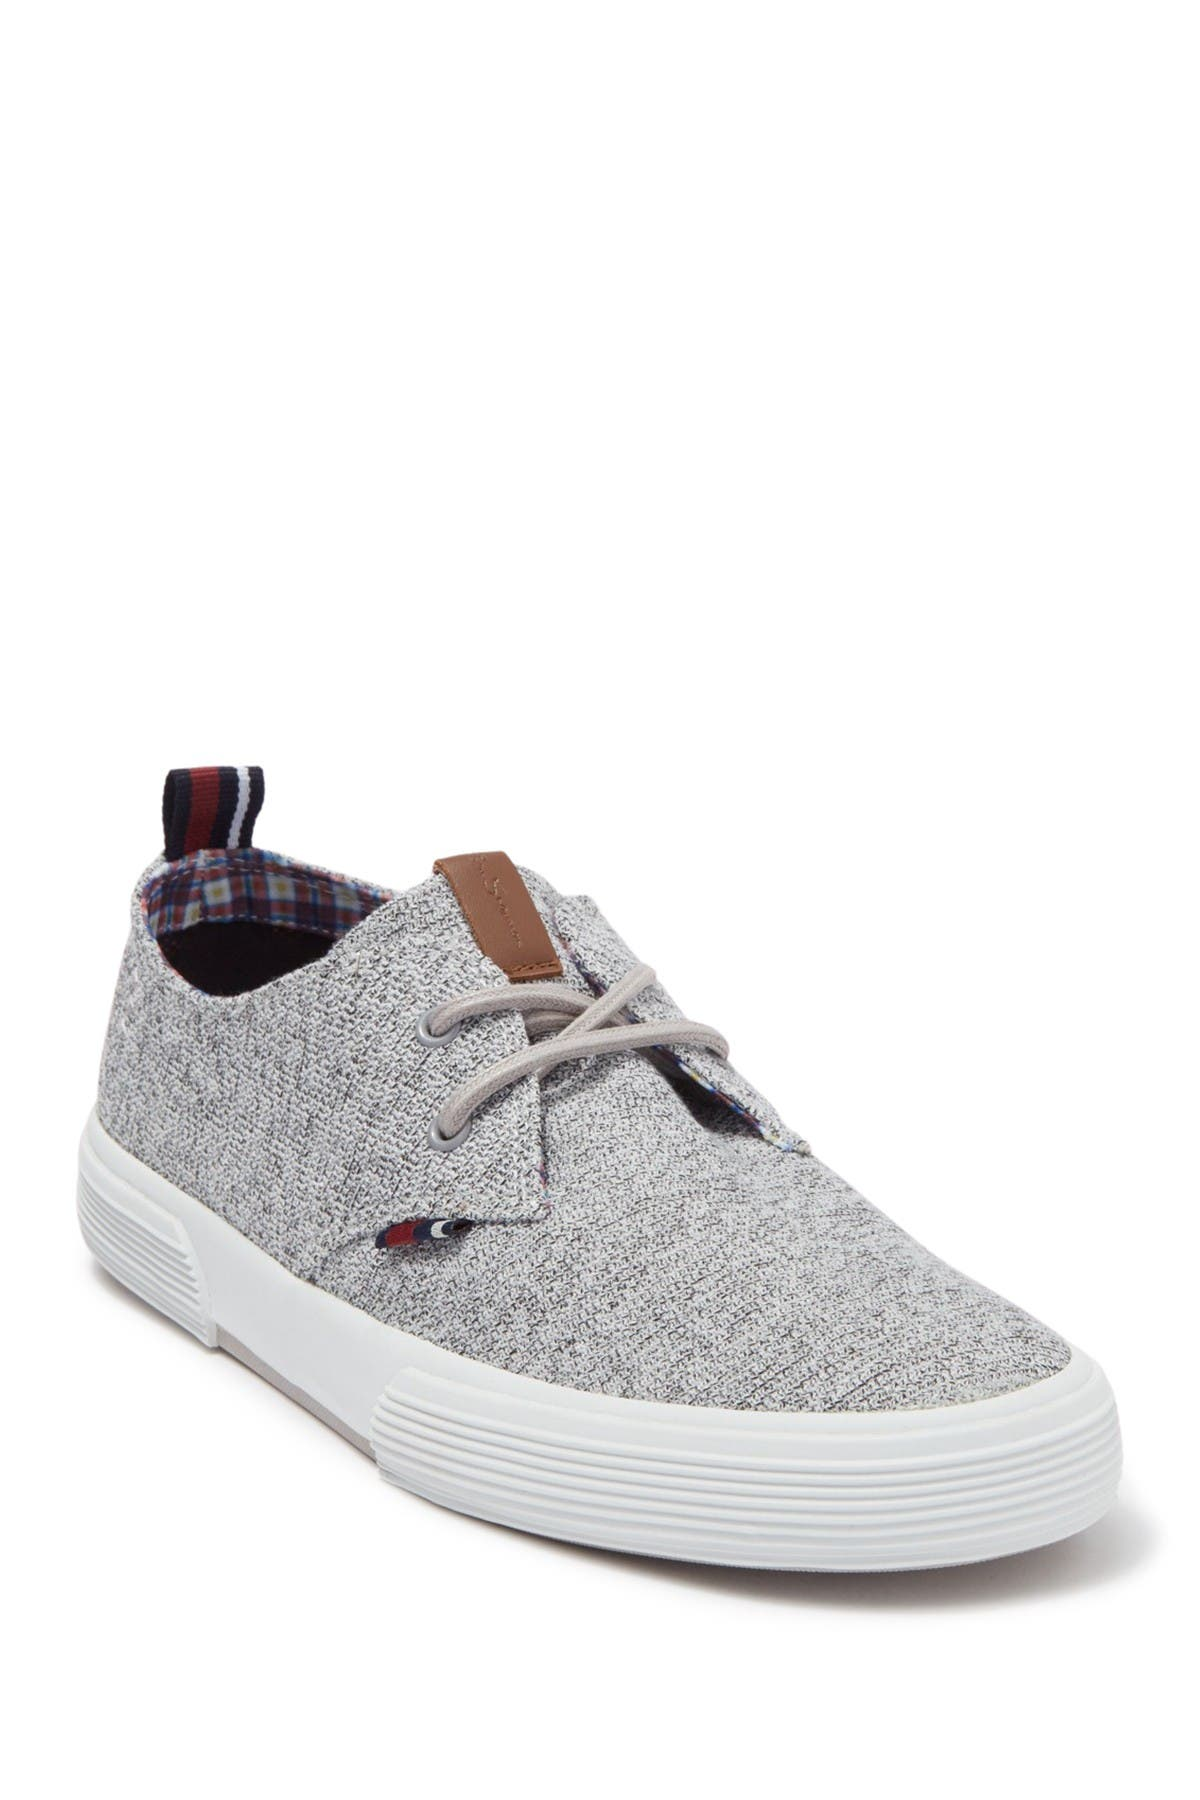 Image of Ben Sherman Bristol Oxford Lace-Up Sneaker